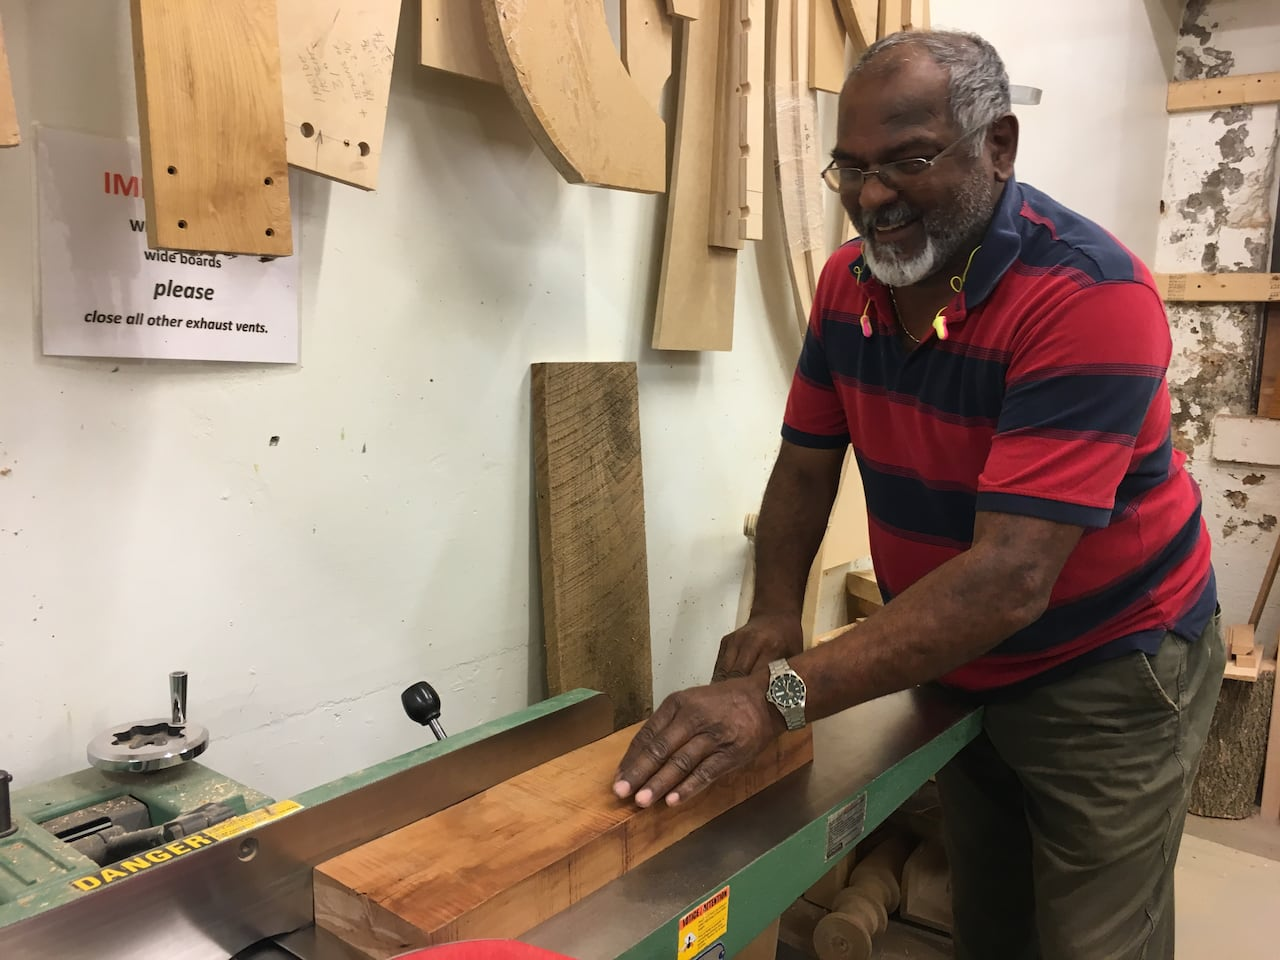 cambridge woodworking club gives seniors a chance to connect